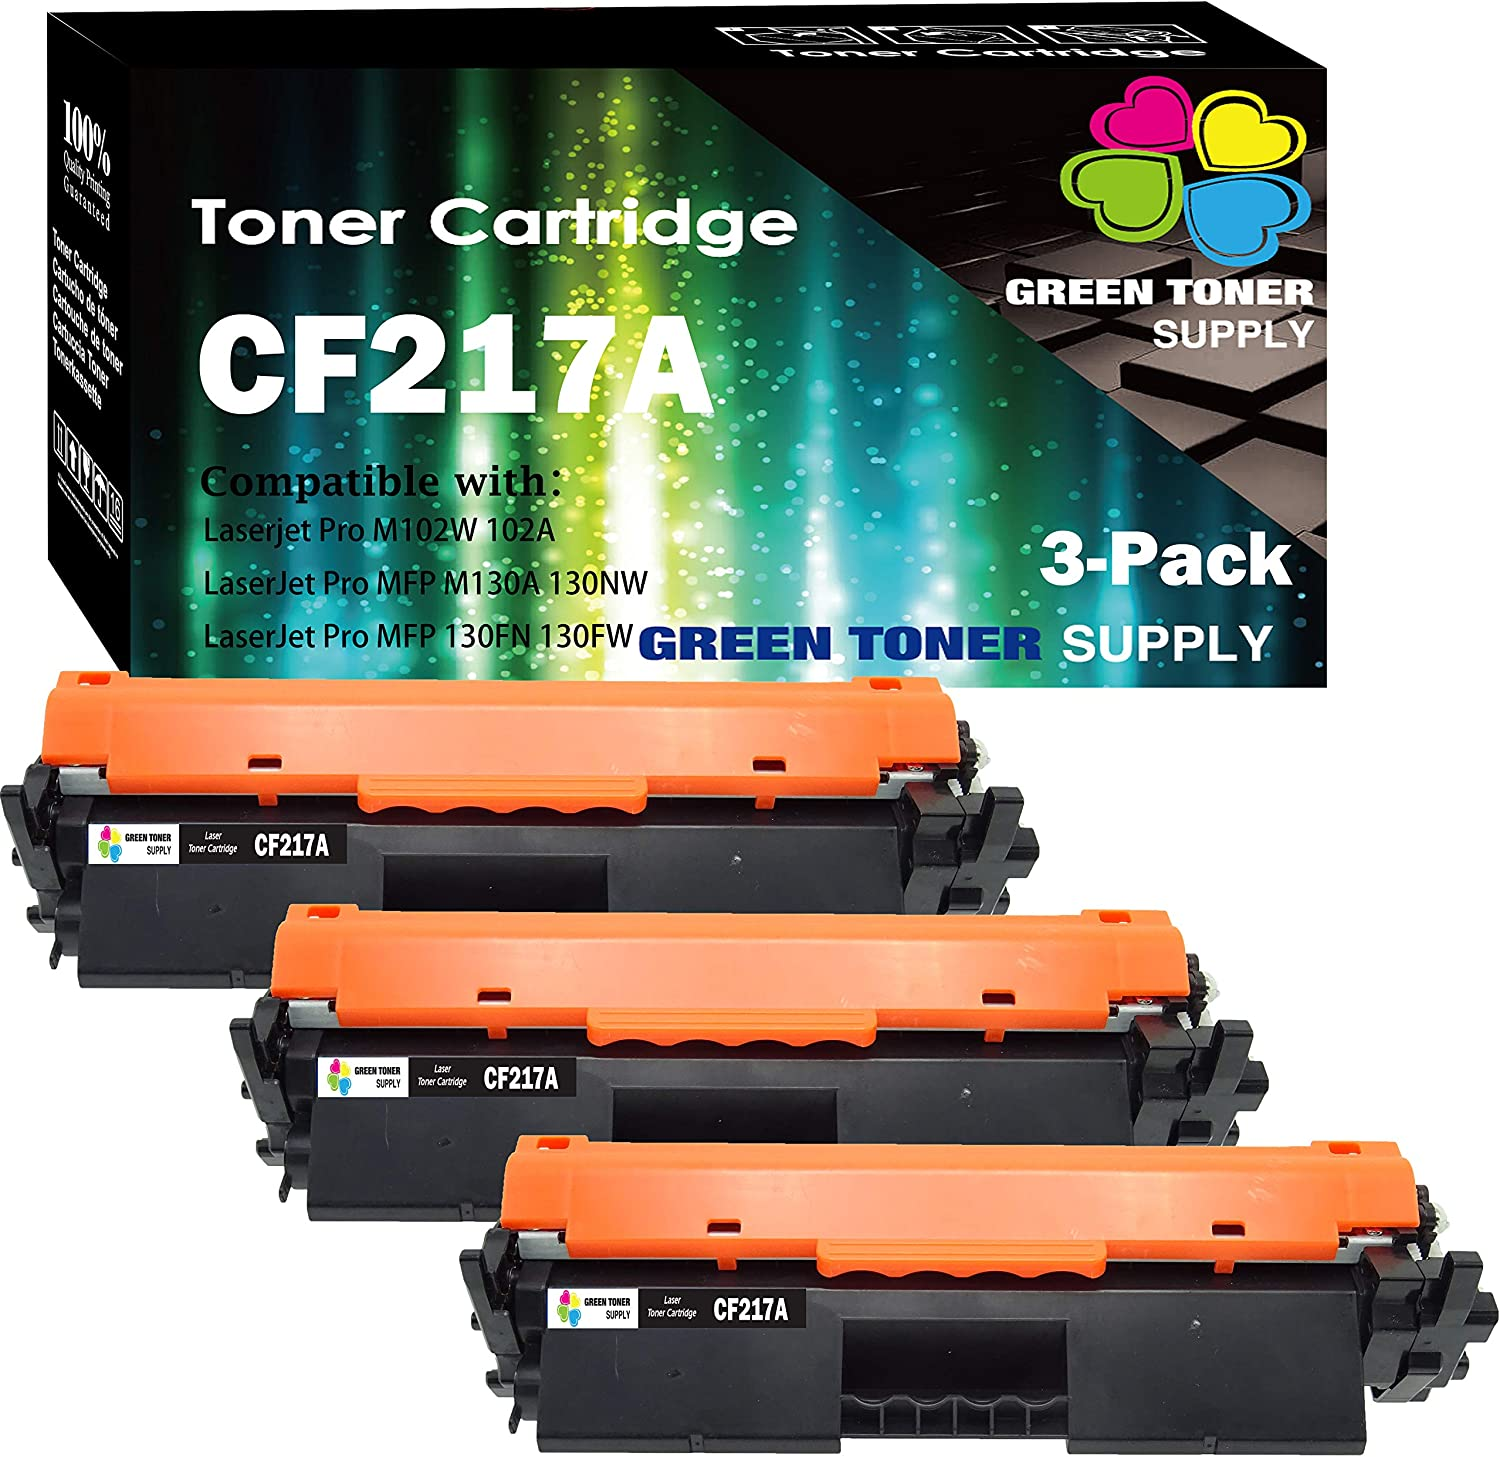 (3-Pack) Compatible 17A CF217A Toner Cartridge 217A Used for HP Laserjet pro M102a M102w MFP M130nw M130fw M130fn M130a Printer, by GTS